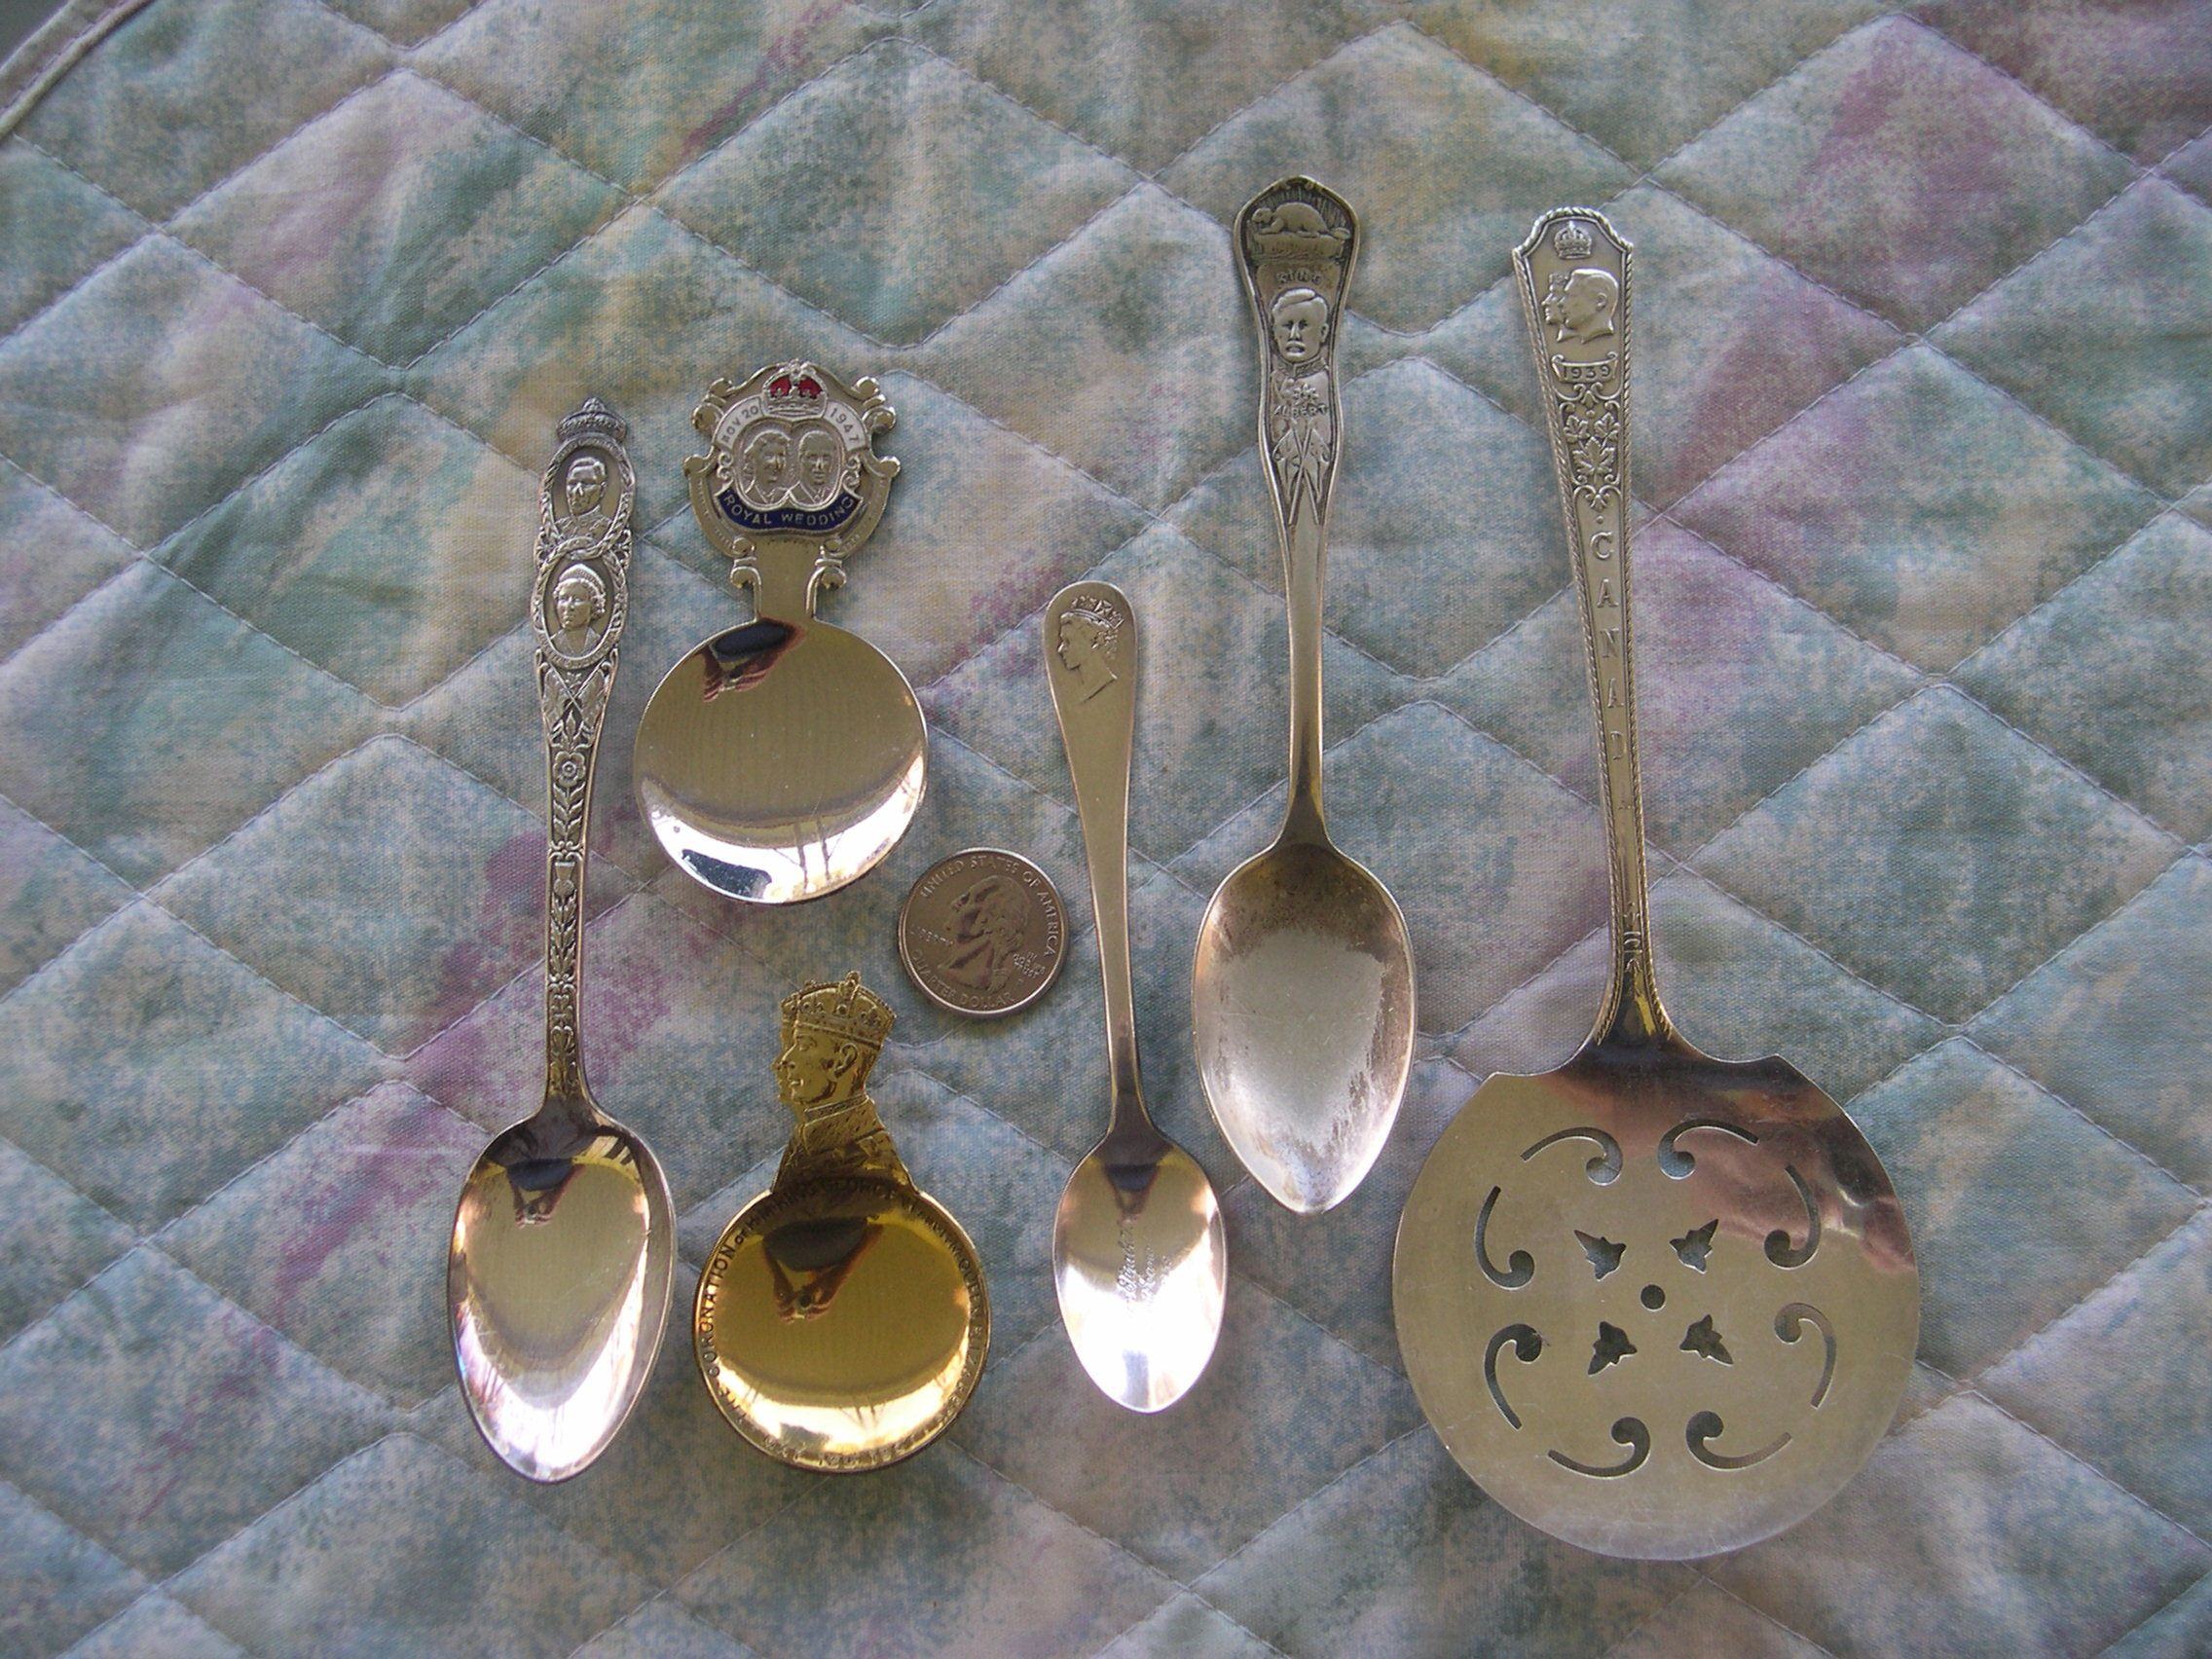 british royalty spoons